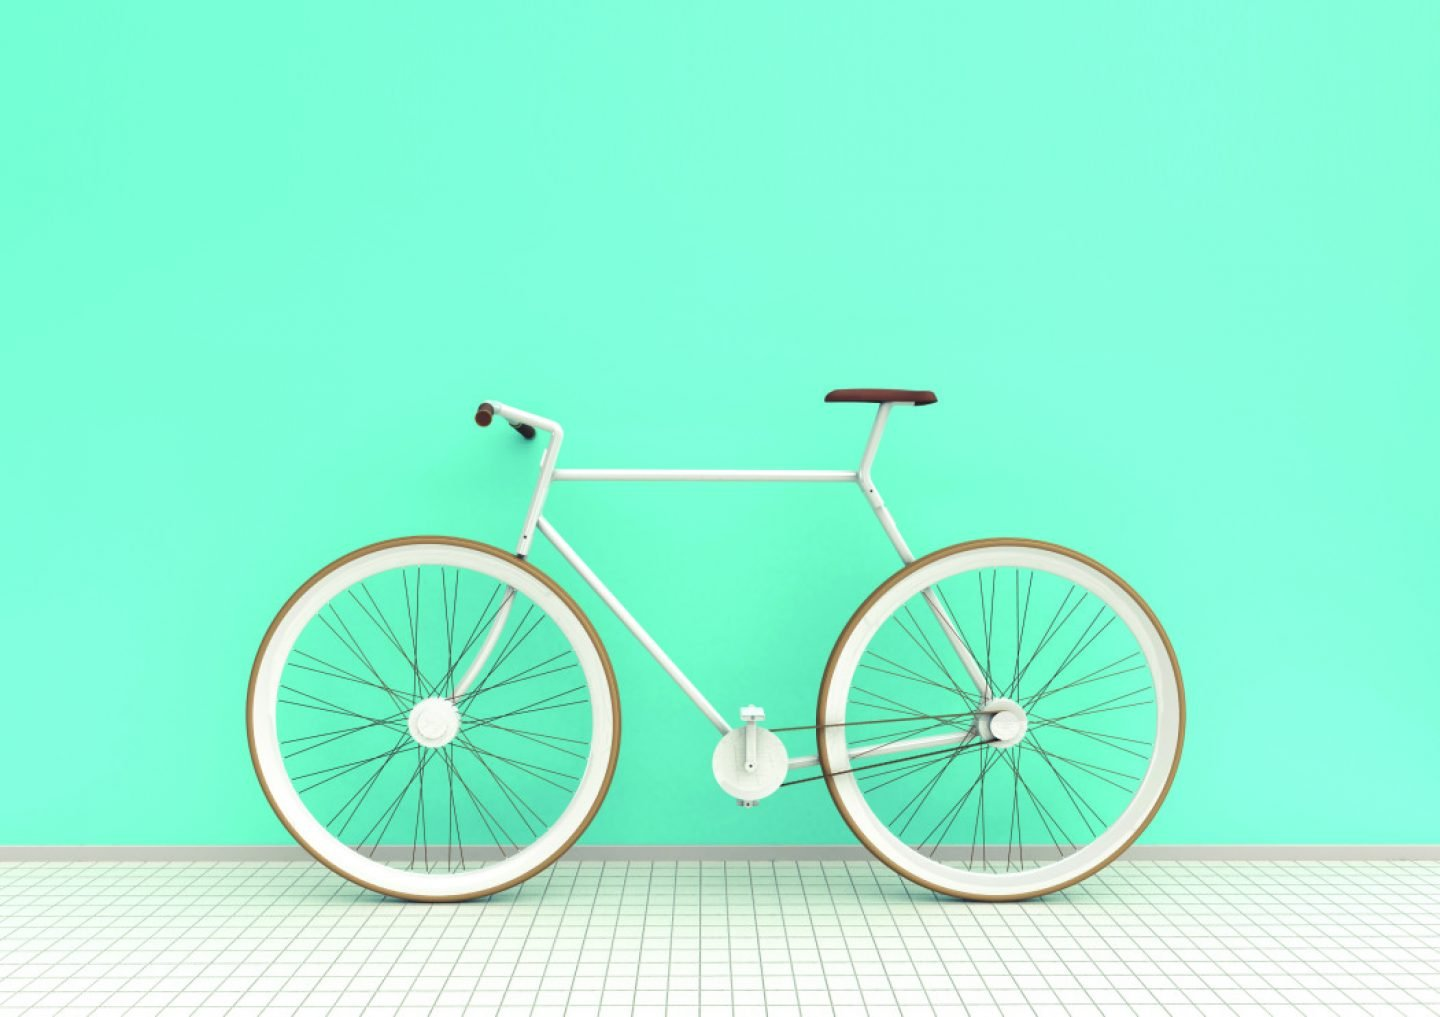 kit-bike_design_001